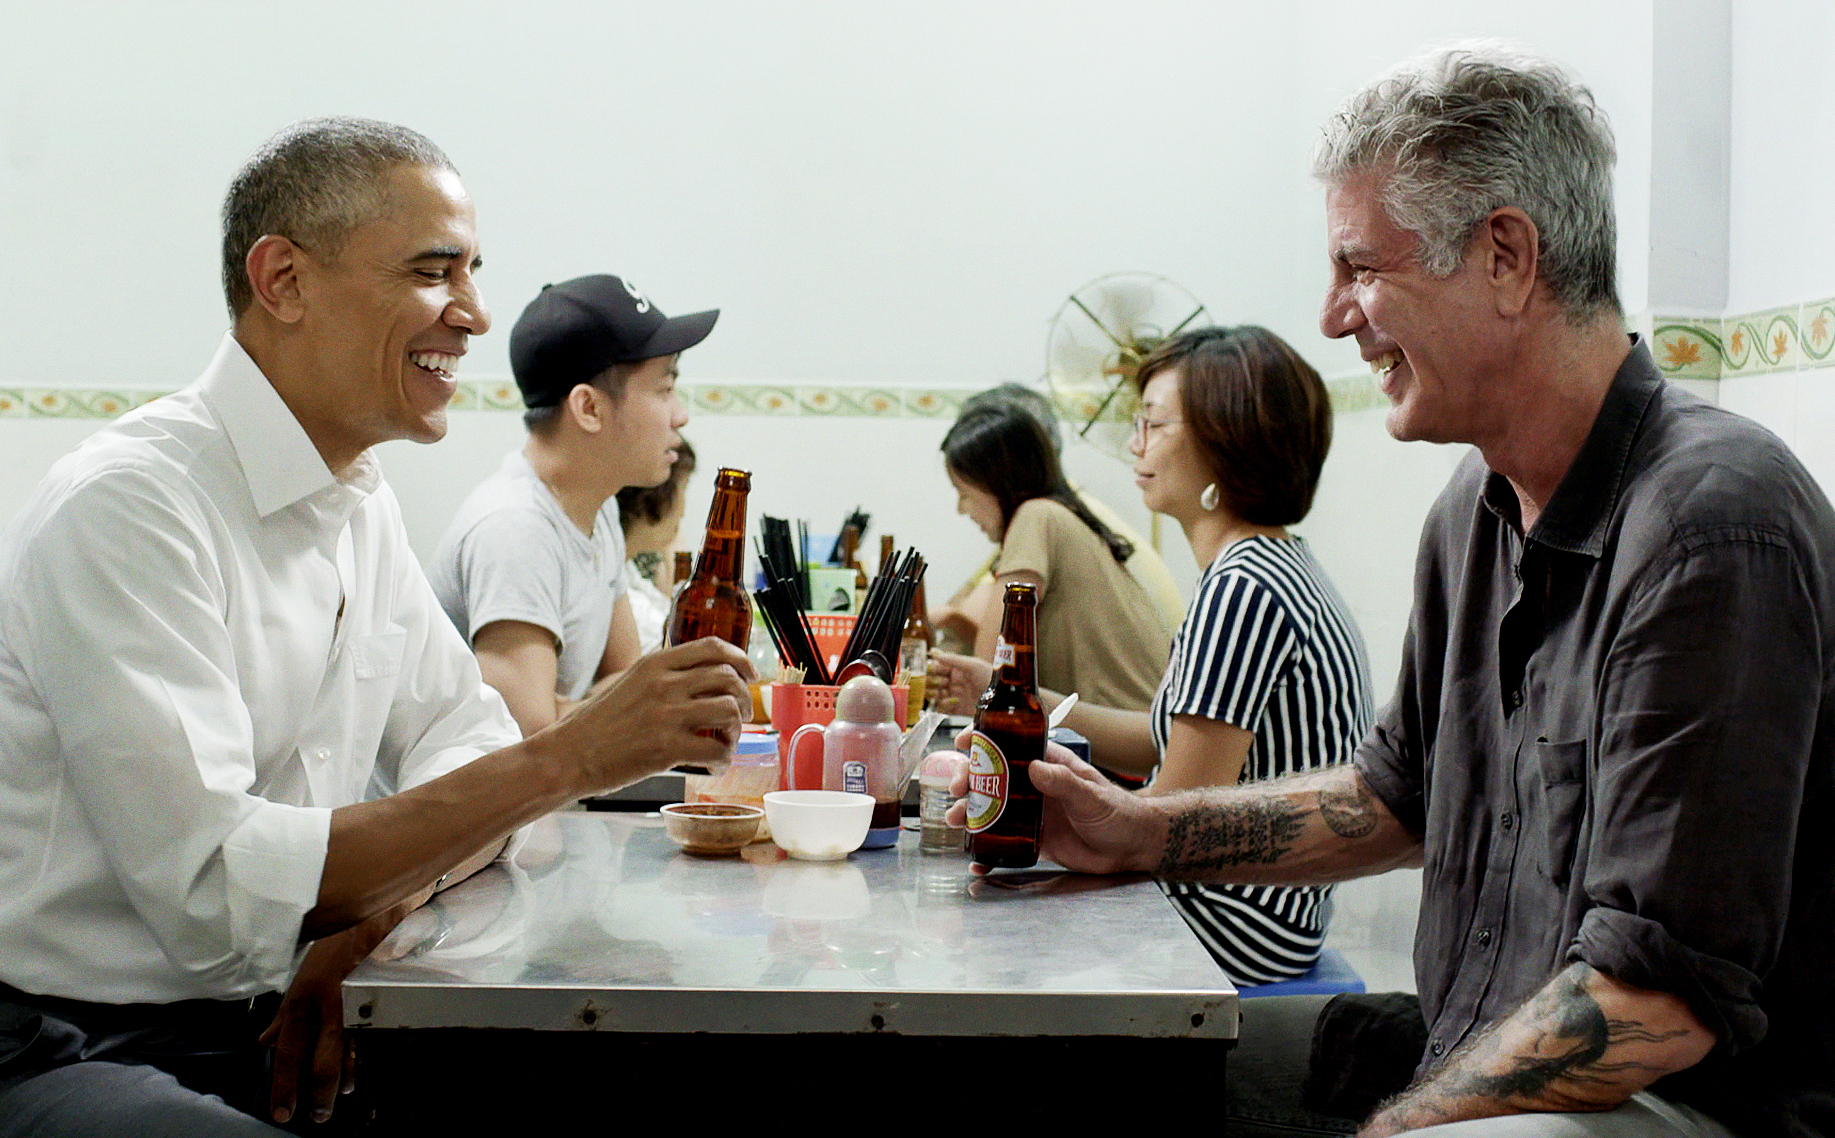 A Trip to Hanoi, Featuring Dinner with President Obama, Kicks off Season Eight of CNN Original Series Anthony Bourdain Parts Unknown, Sunday Sept. 25 at 9pm